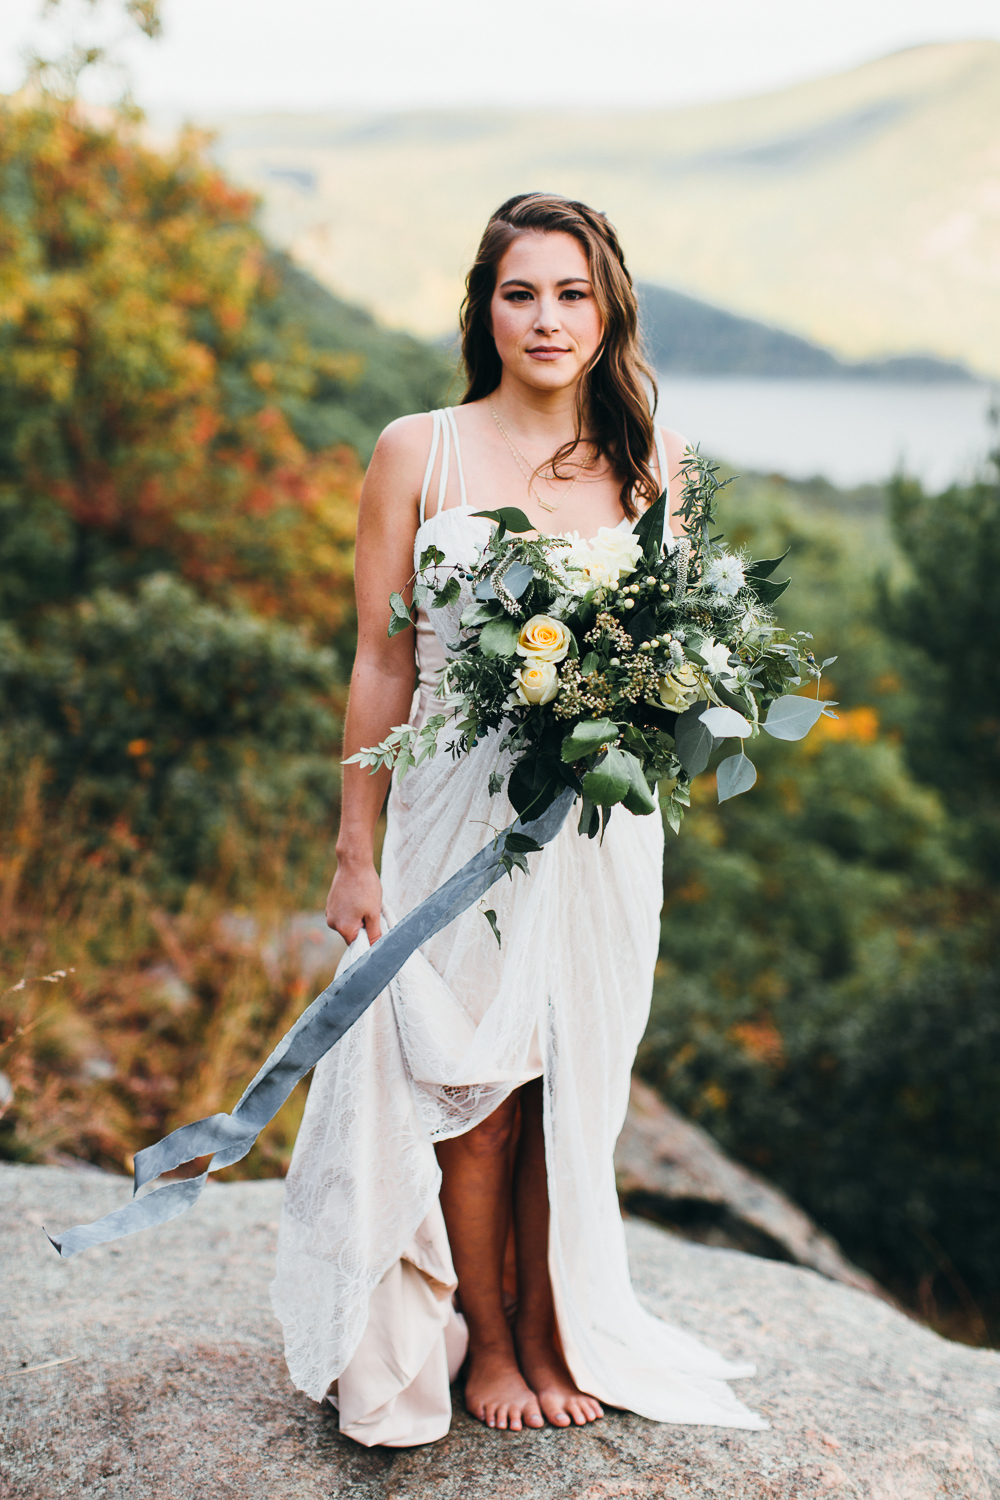 Emily-Kirke-Photography-Mountain-Elopement (2 of 3).jpg